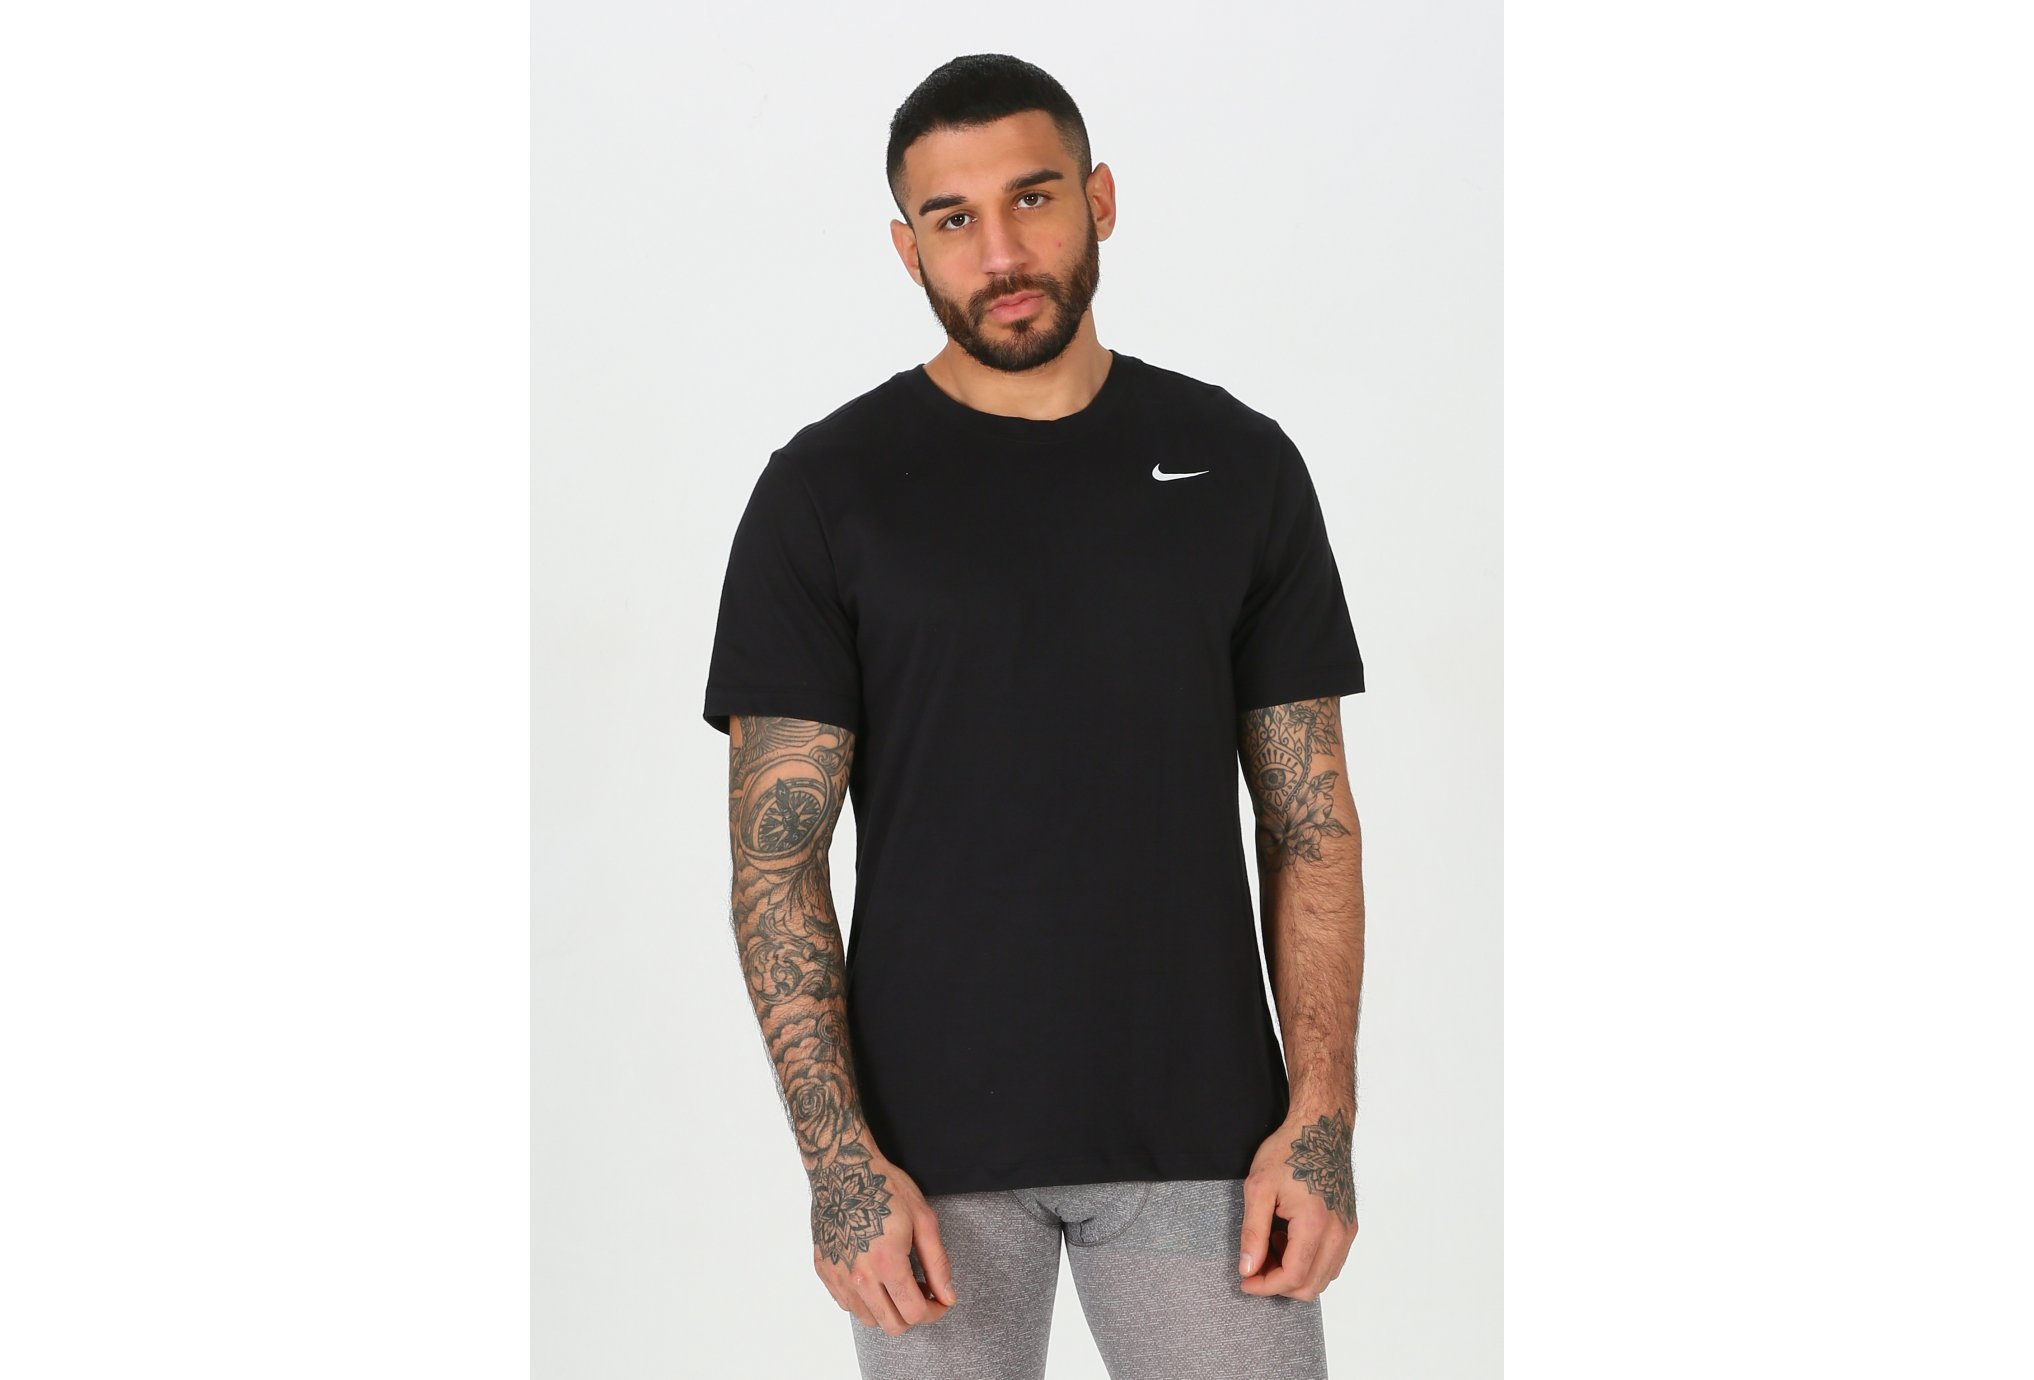 Nike Dfc Block Solid Crew M vêtement running homme